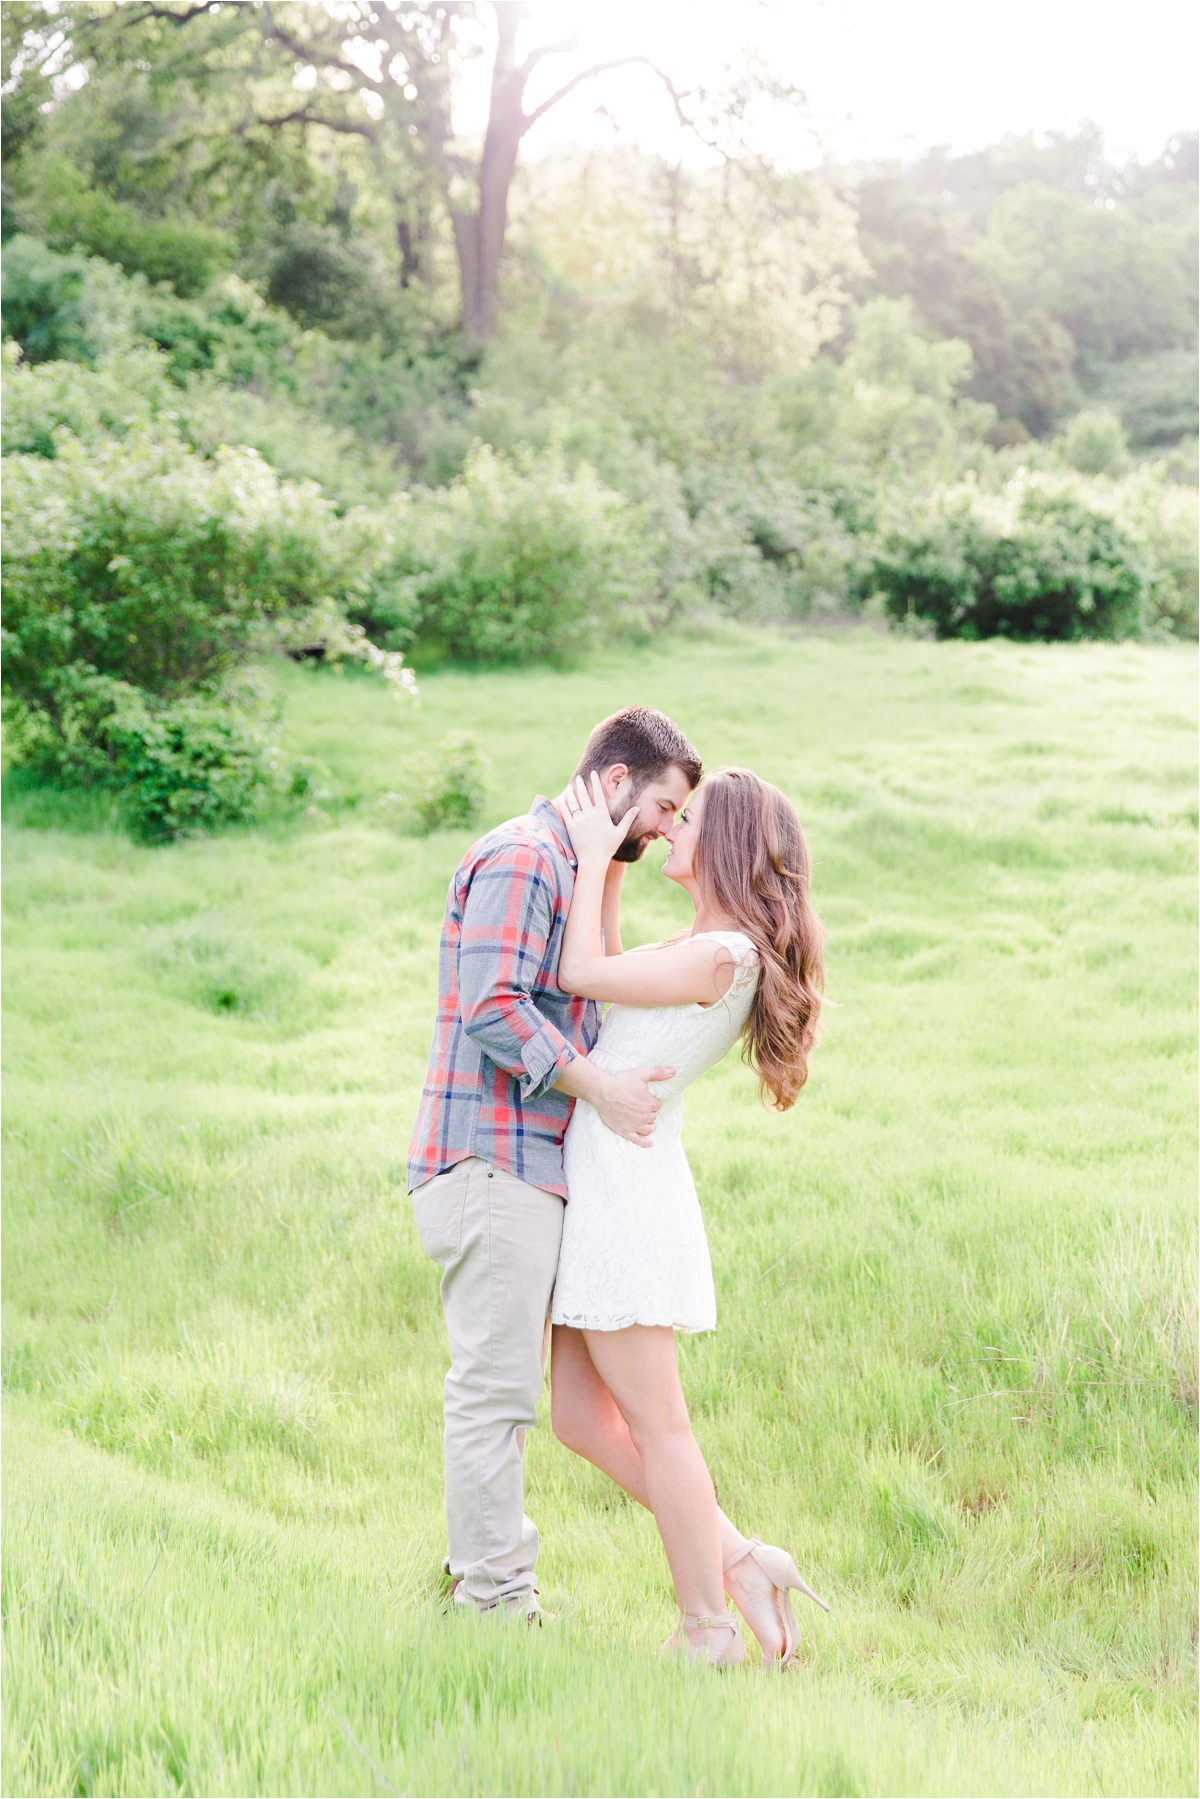 Engagement shoot at Pleasanton Ridge Regional Park in Sunol, CA. Photos by Briana Calderon Photography based in San Francisco Bay Area in California.